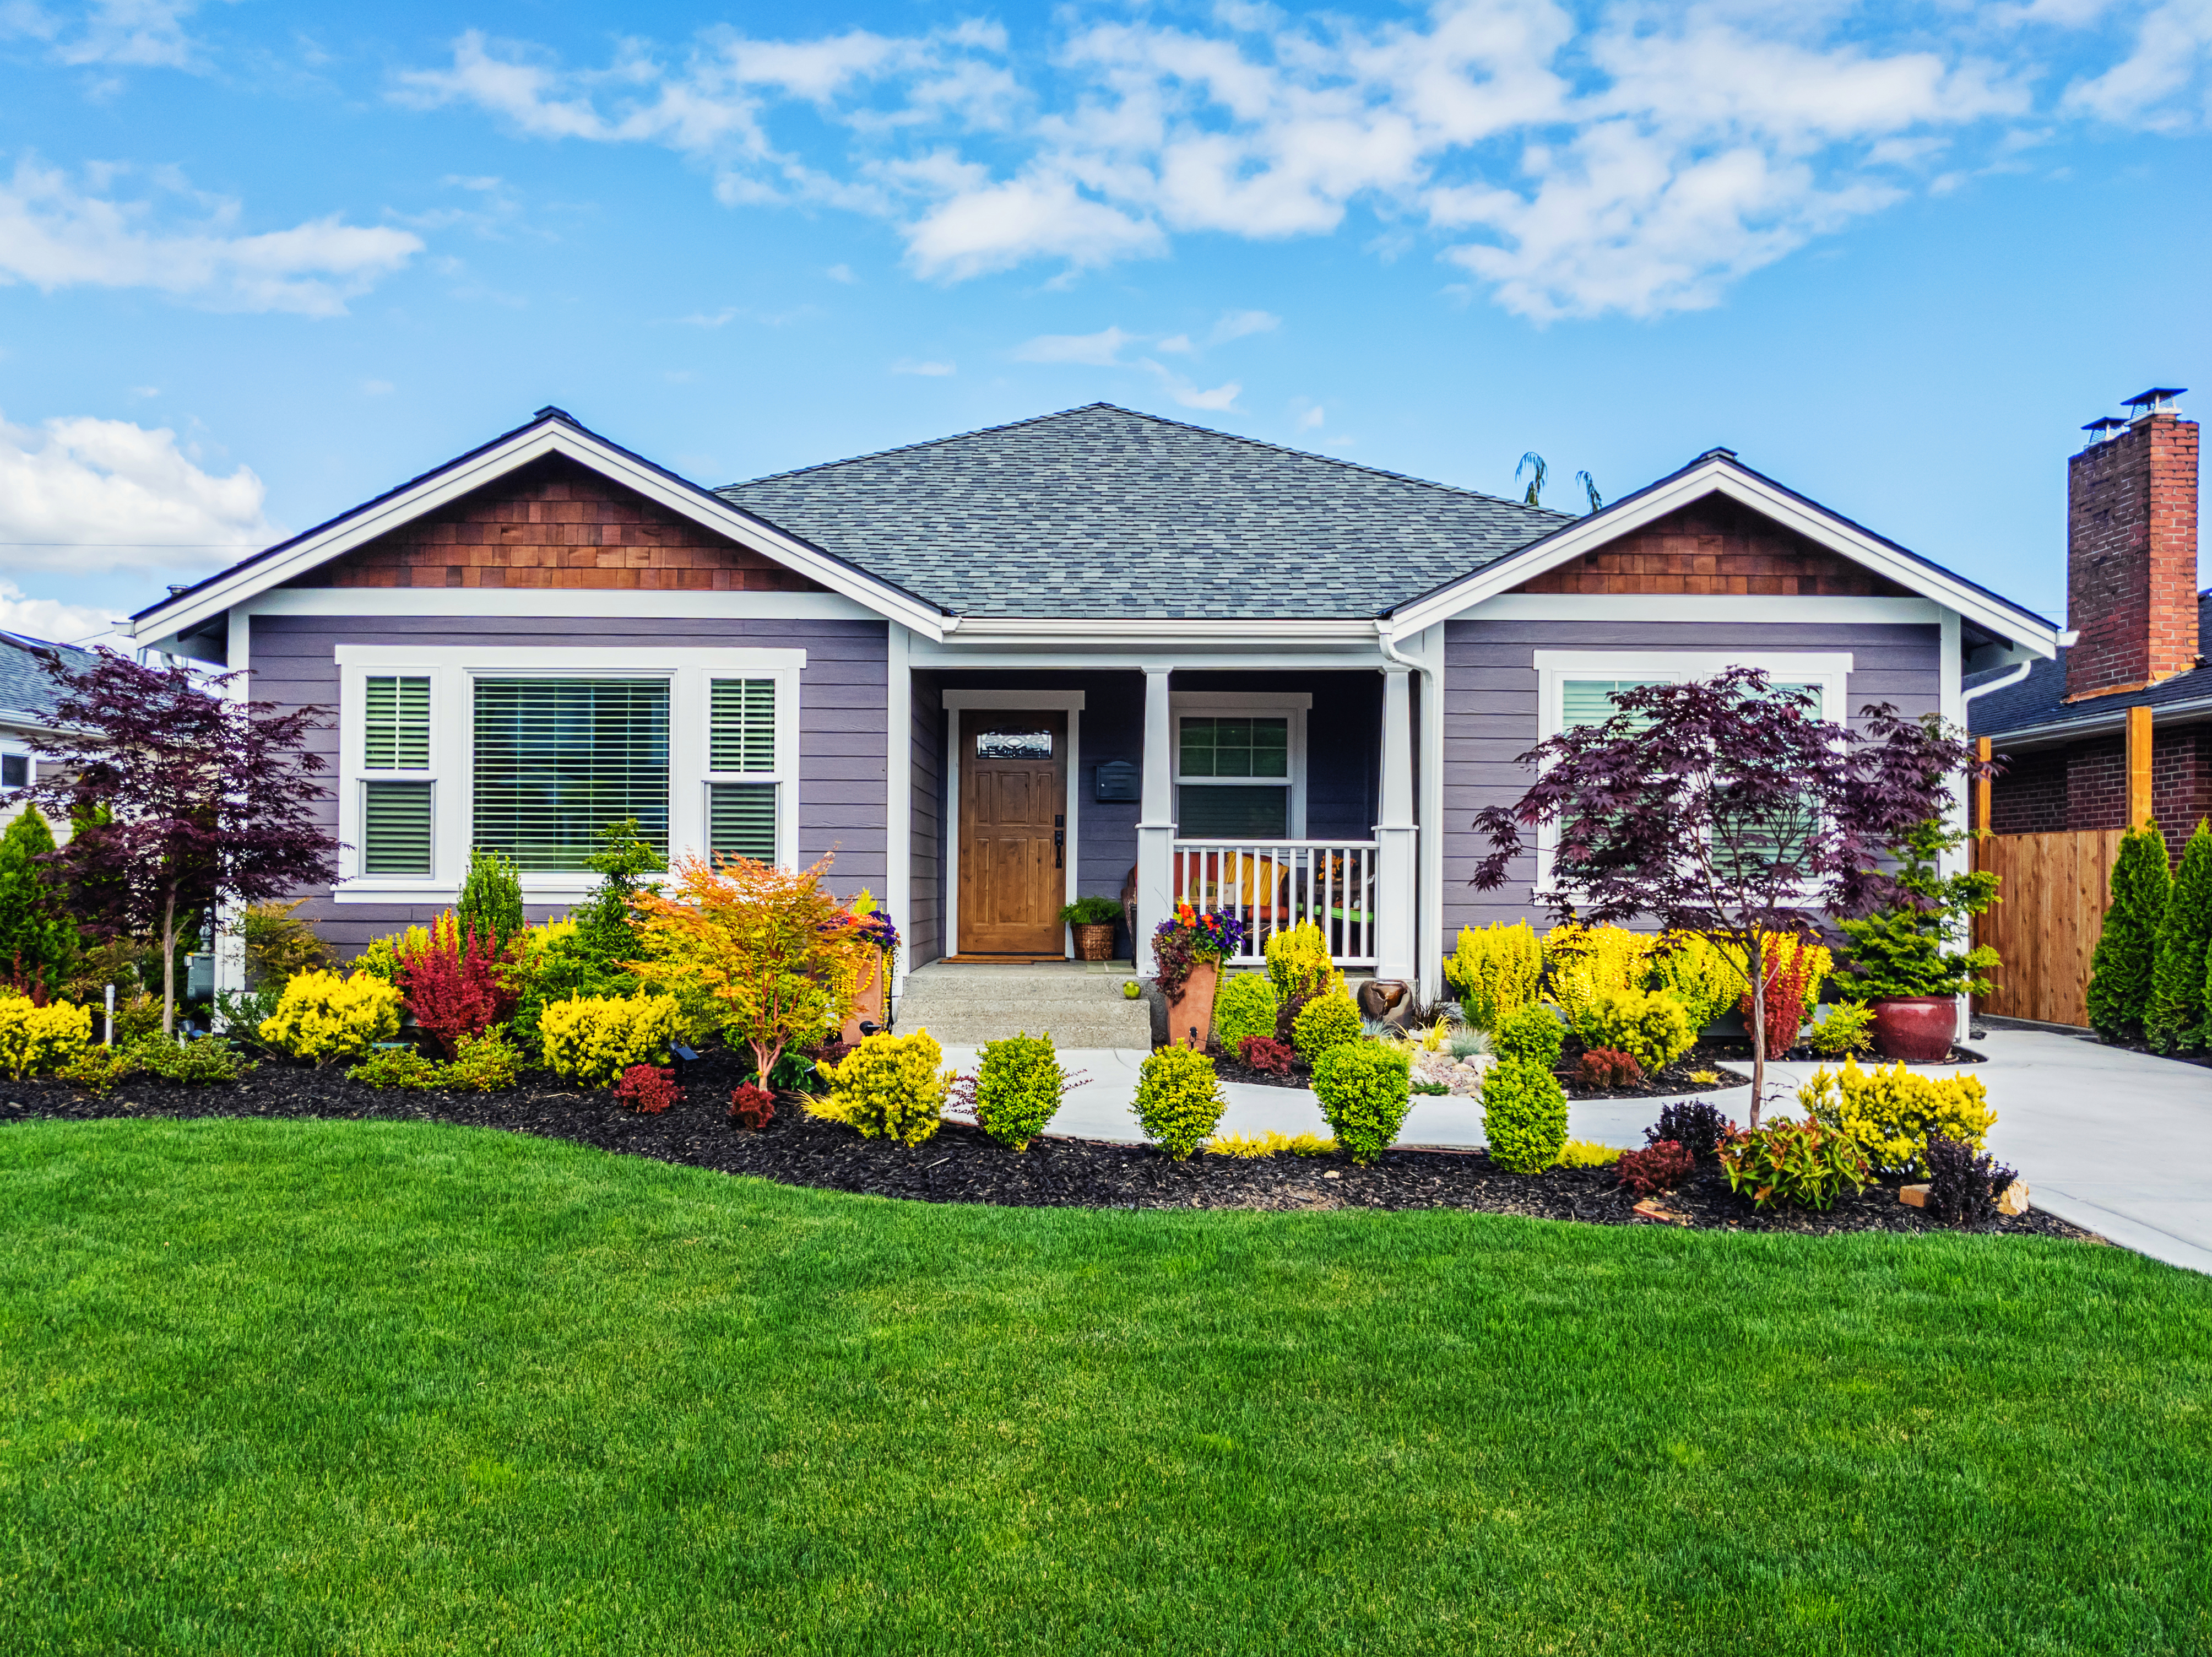 Thomas claims that your first home can be yours with no cash and a bad credit score